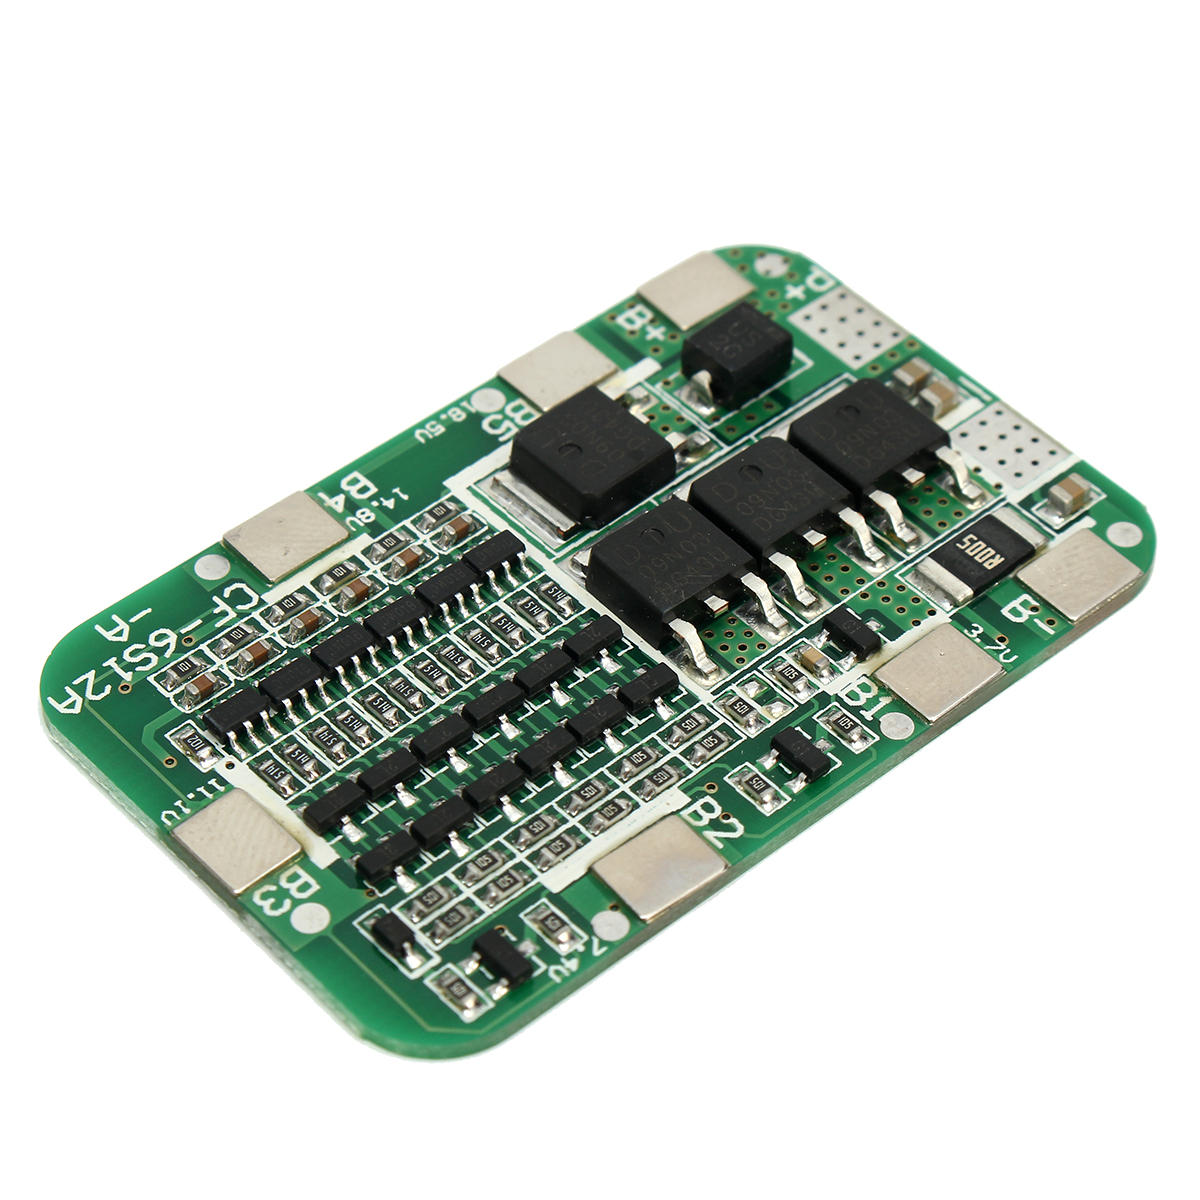 Pcb Bms 6s 15a 24v Battery Protection Board For 18650 Li Ion Lithium China Digital Fm Receiver Circuit Assembly Production Cell